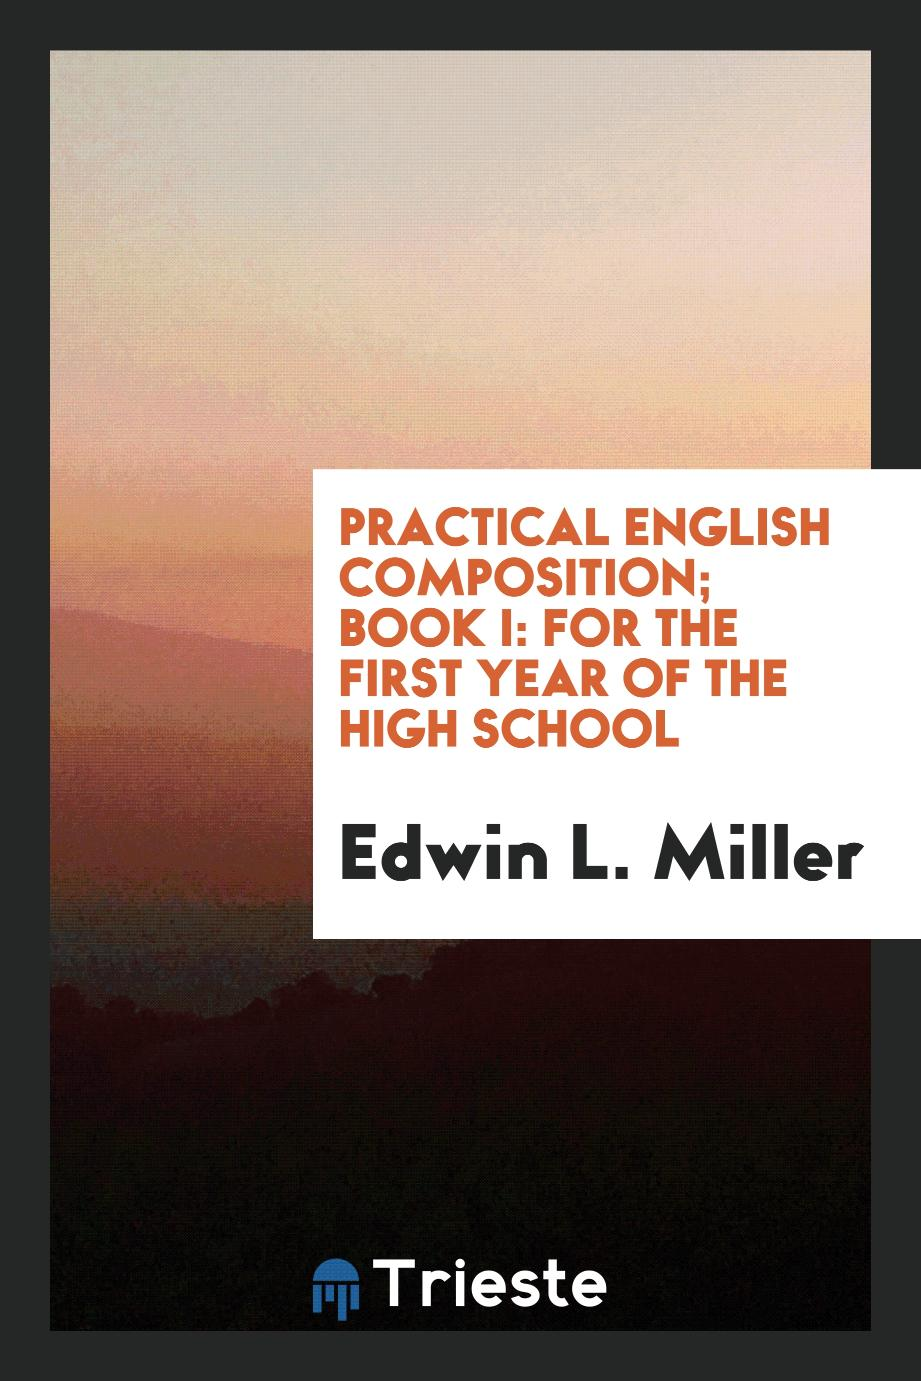 Practical English Composition; Book I: For the First Year of the High School